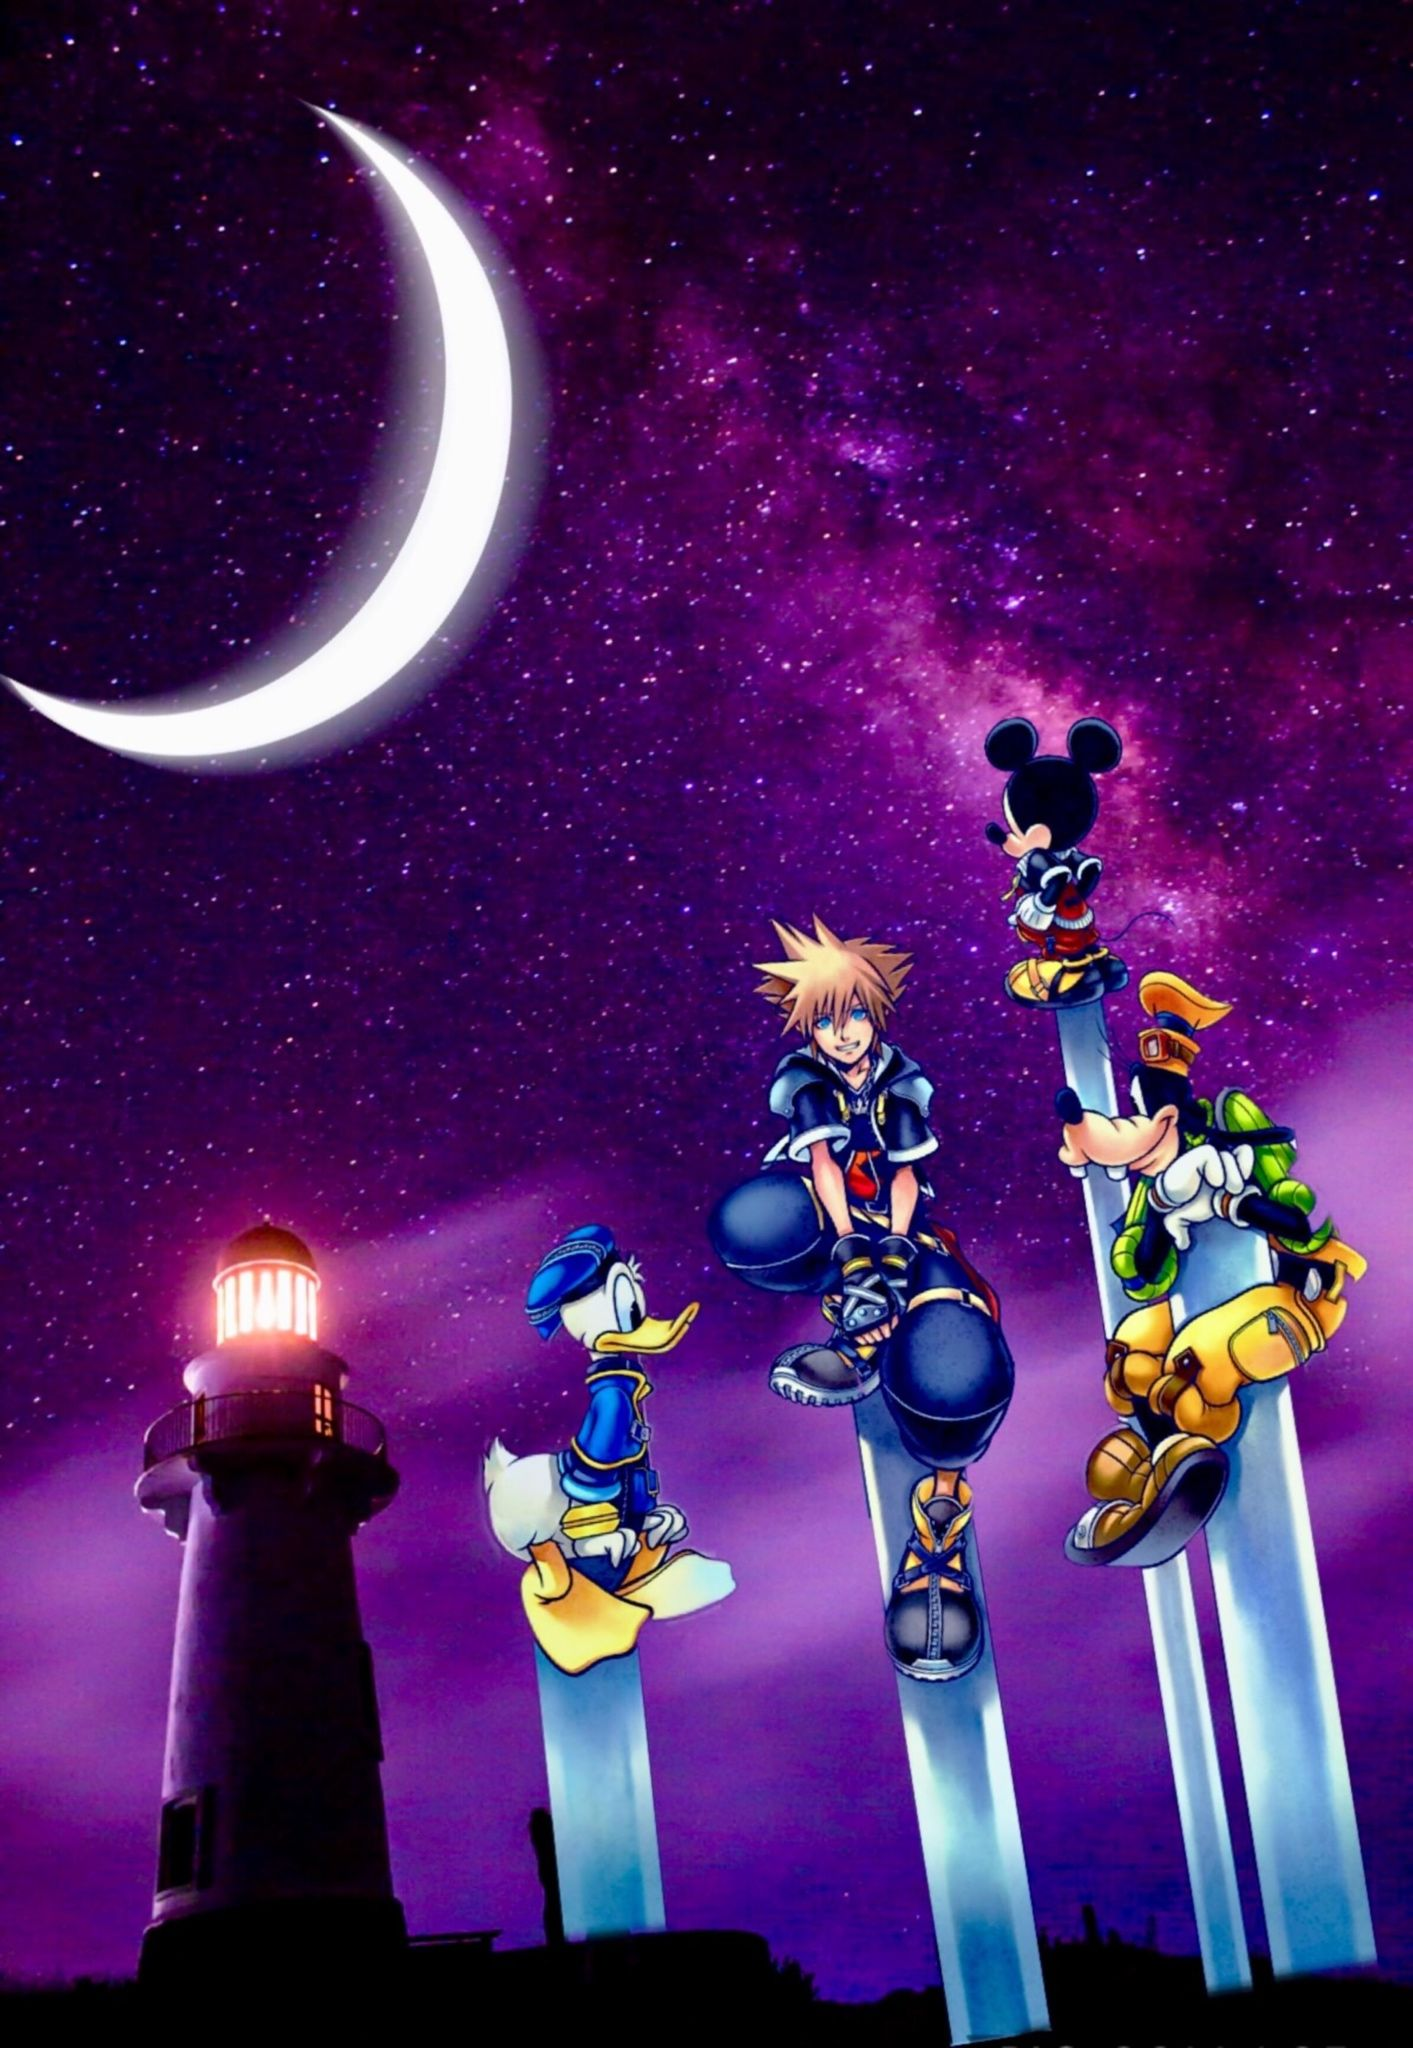 Kingdom Hearts Iphone Wallpapers Top Free Kingdom Hearts Iphone Backgrounds Wallpaperaccess